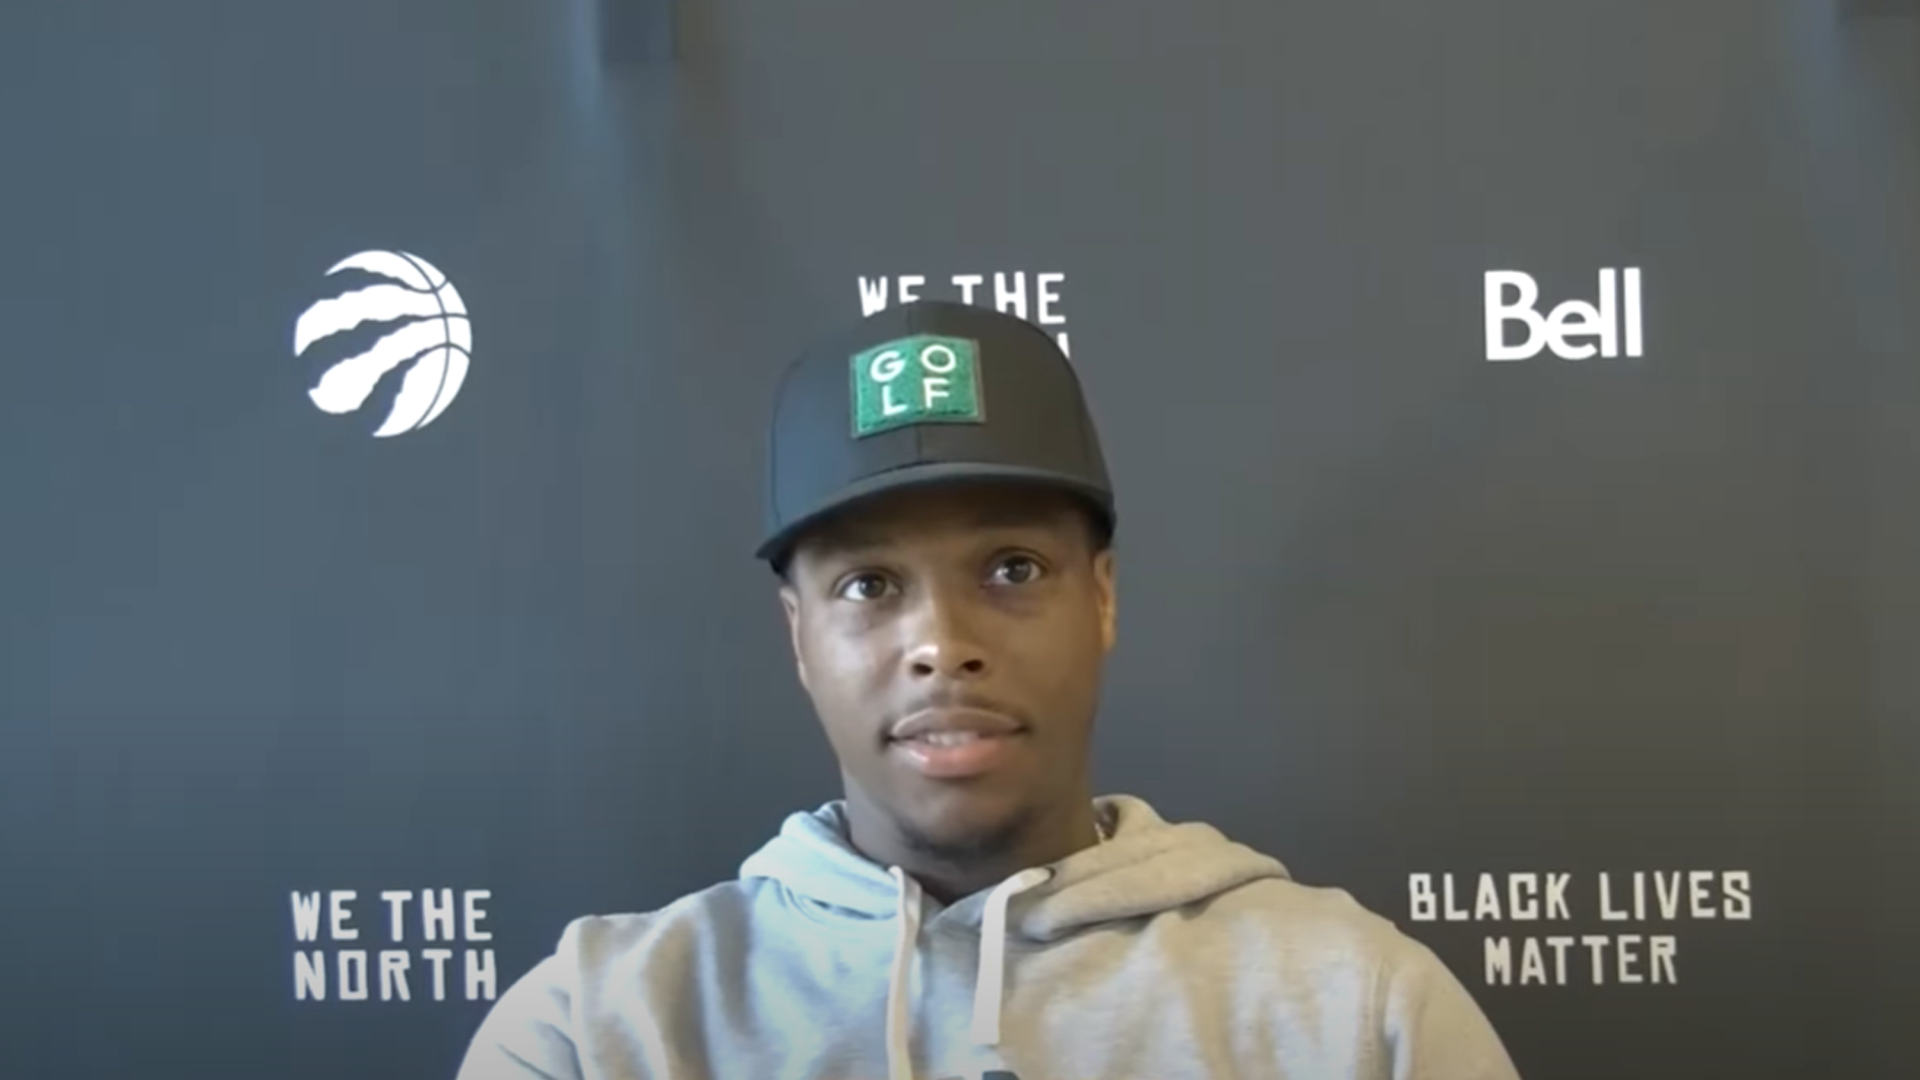 End of Season: Kyle Lowry - May 18, 2021